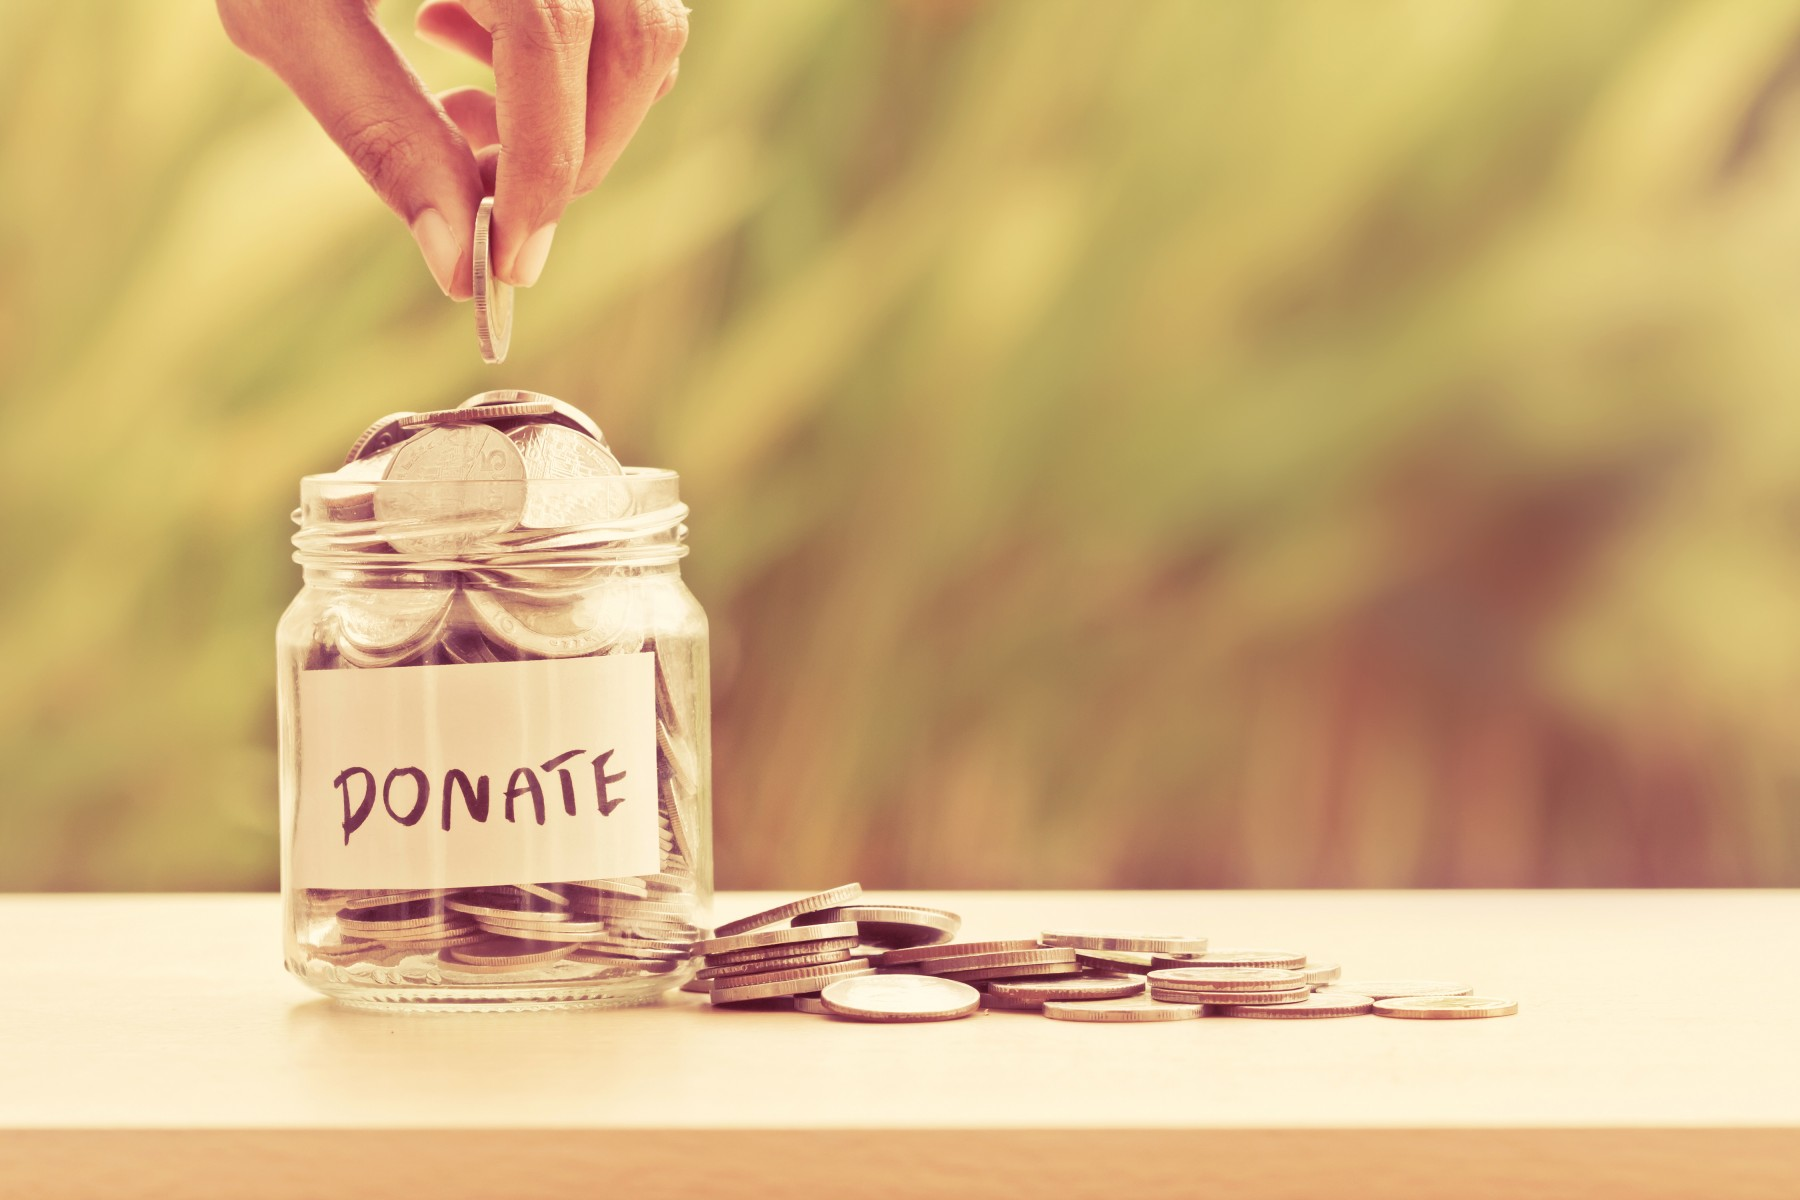 Donors More Likely to Give to COVID Causes When Font Matches Message